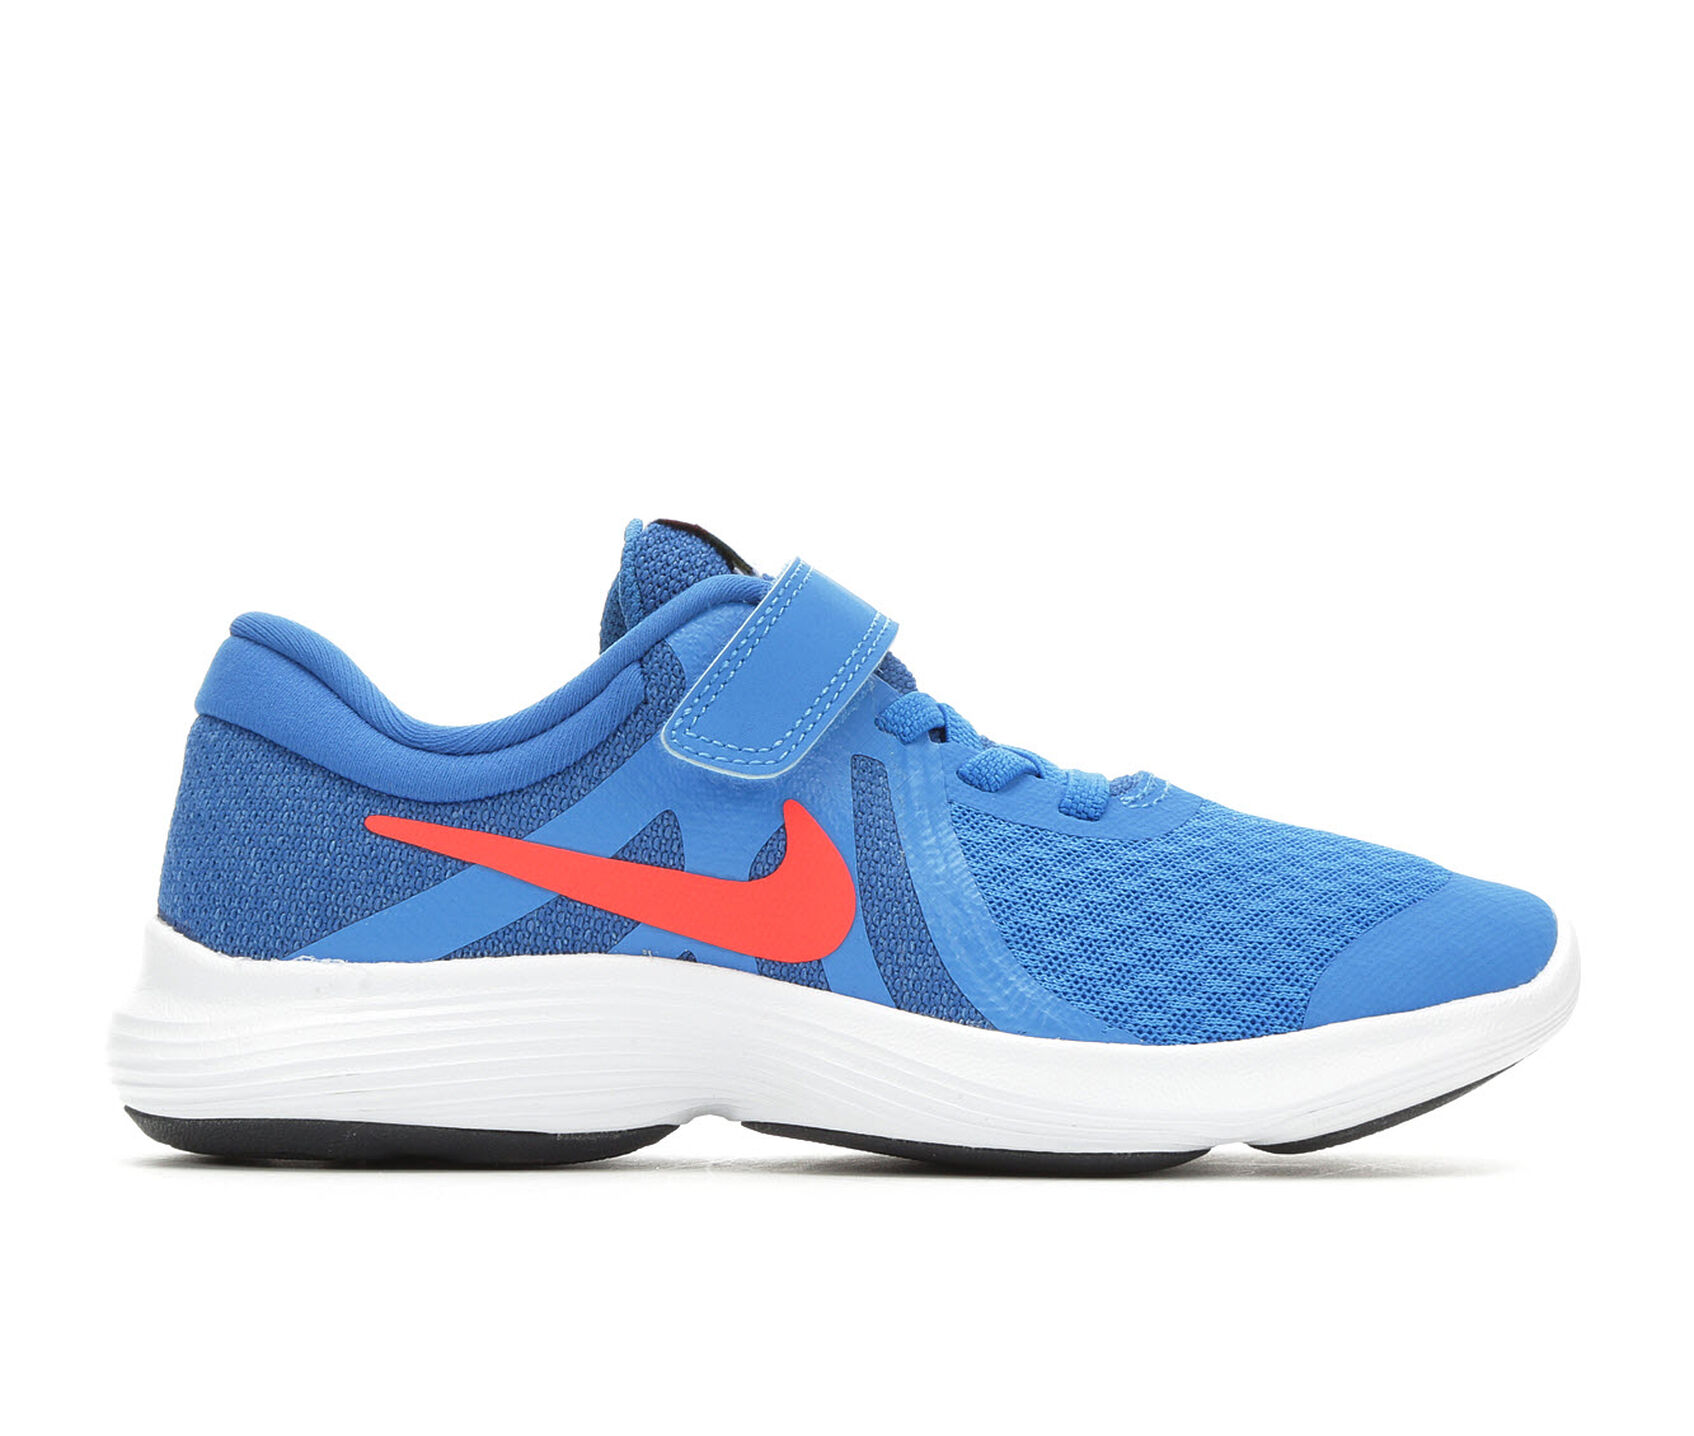 71f7d3590d3 ... Nike Little Kid Revolution 4 Running Shoes. Previous